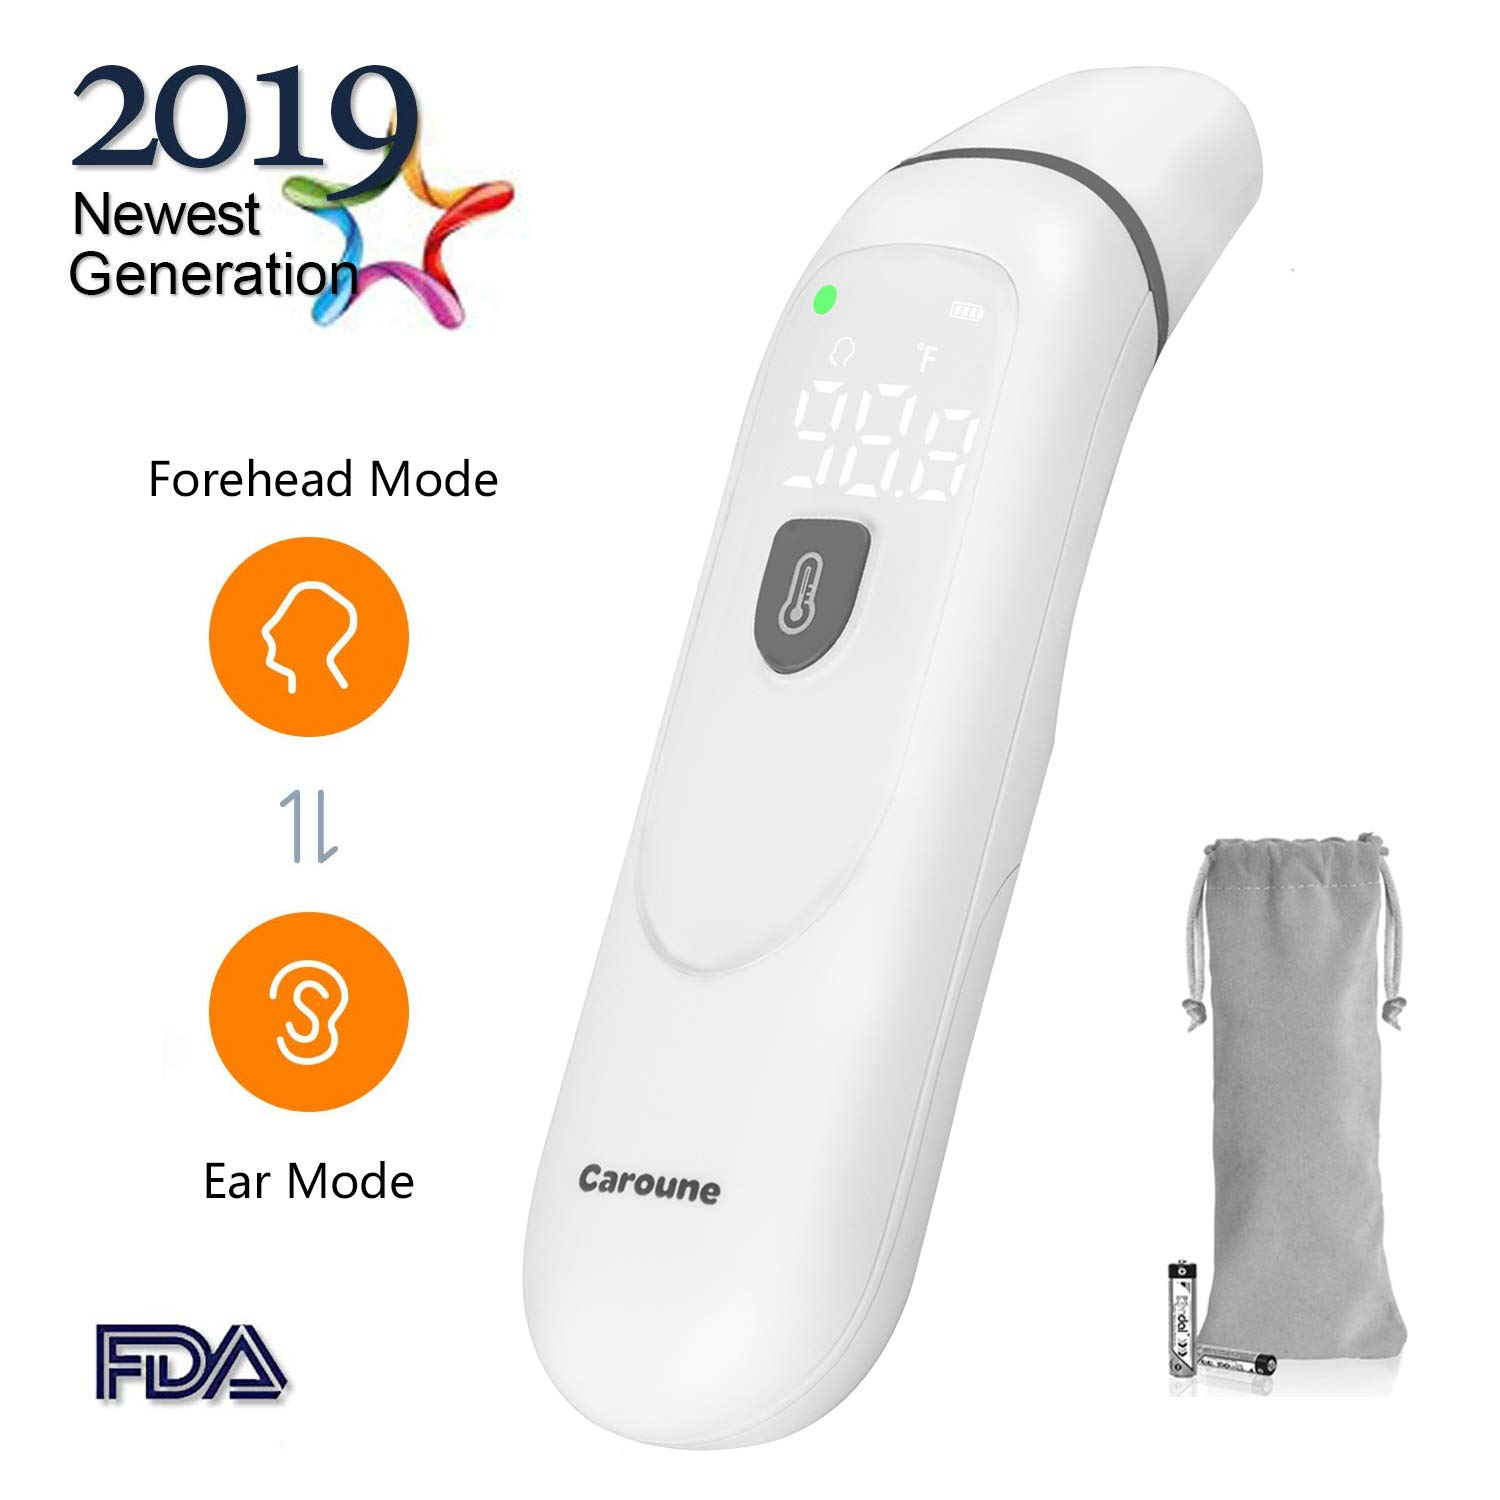 【Upgraded】Caroune Forehead and Ear Thermometer, Medical Digital Infrared Temporal Thermometer for Fever, Instant Accurate Reading for Baby Kids and Adults by Caroune